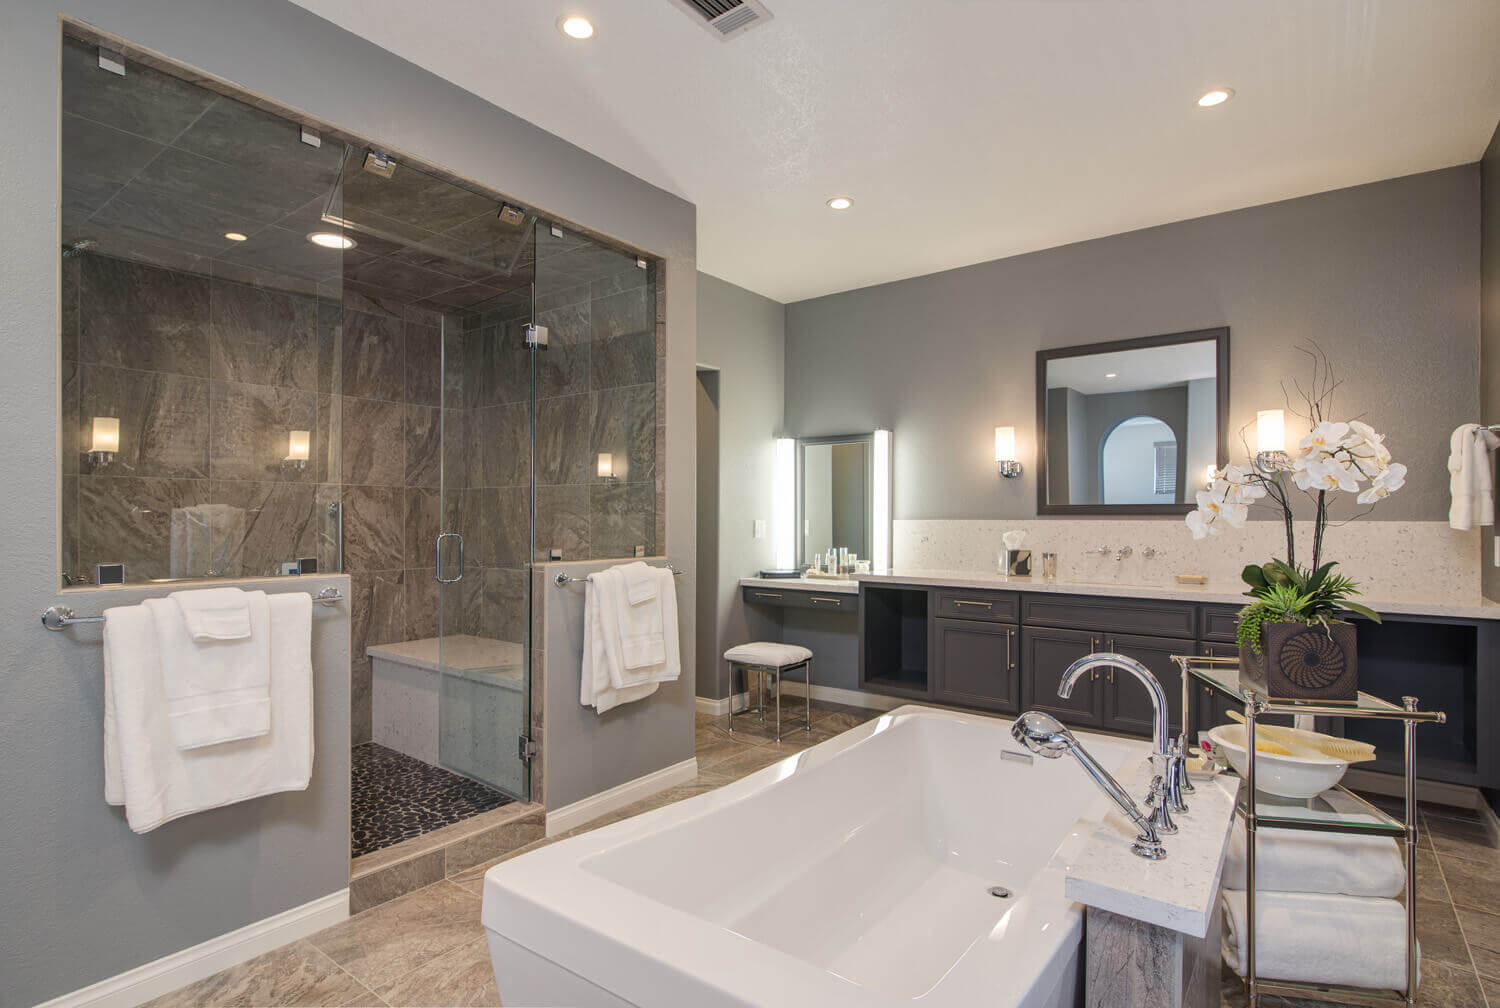 Average Master Bathroom Remodel Cost. Bathroom Renovation Cost Average  Master Remodel E